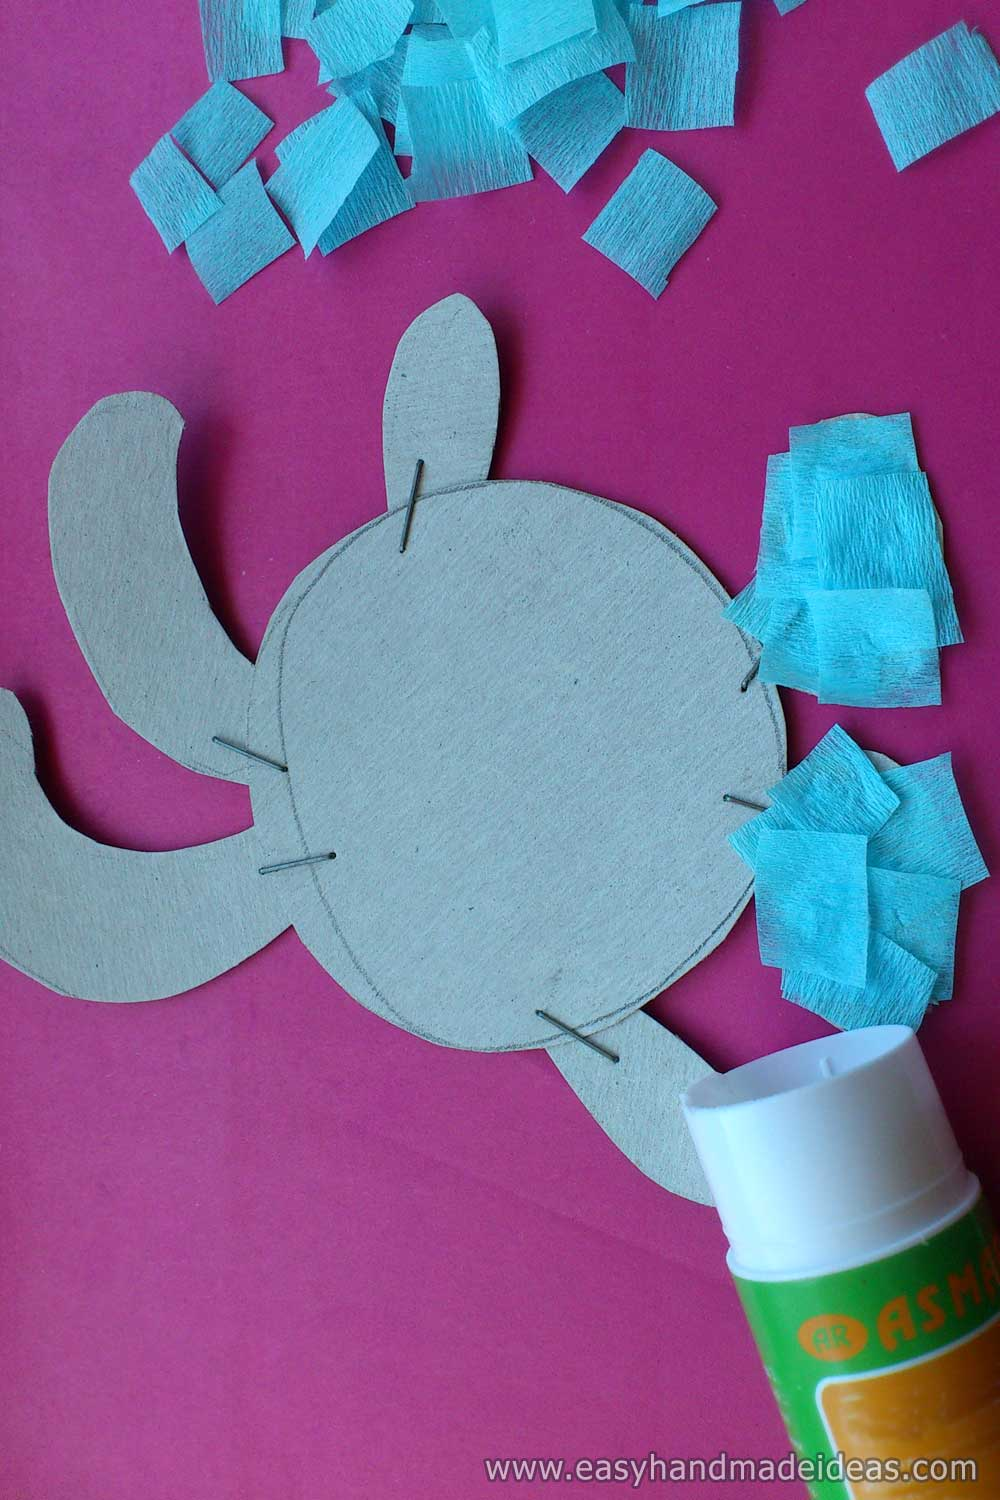 Gluing a Rabbit with Crepe Paper